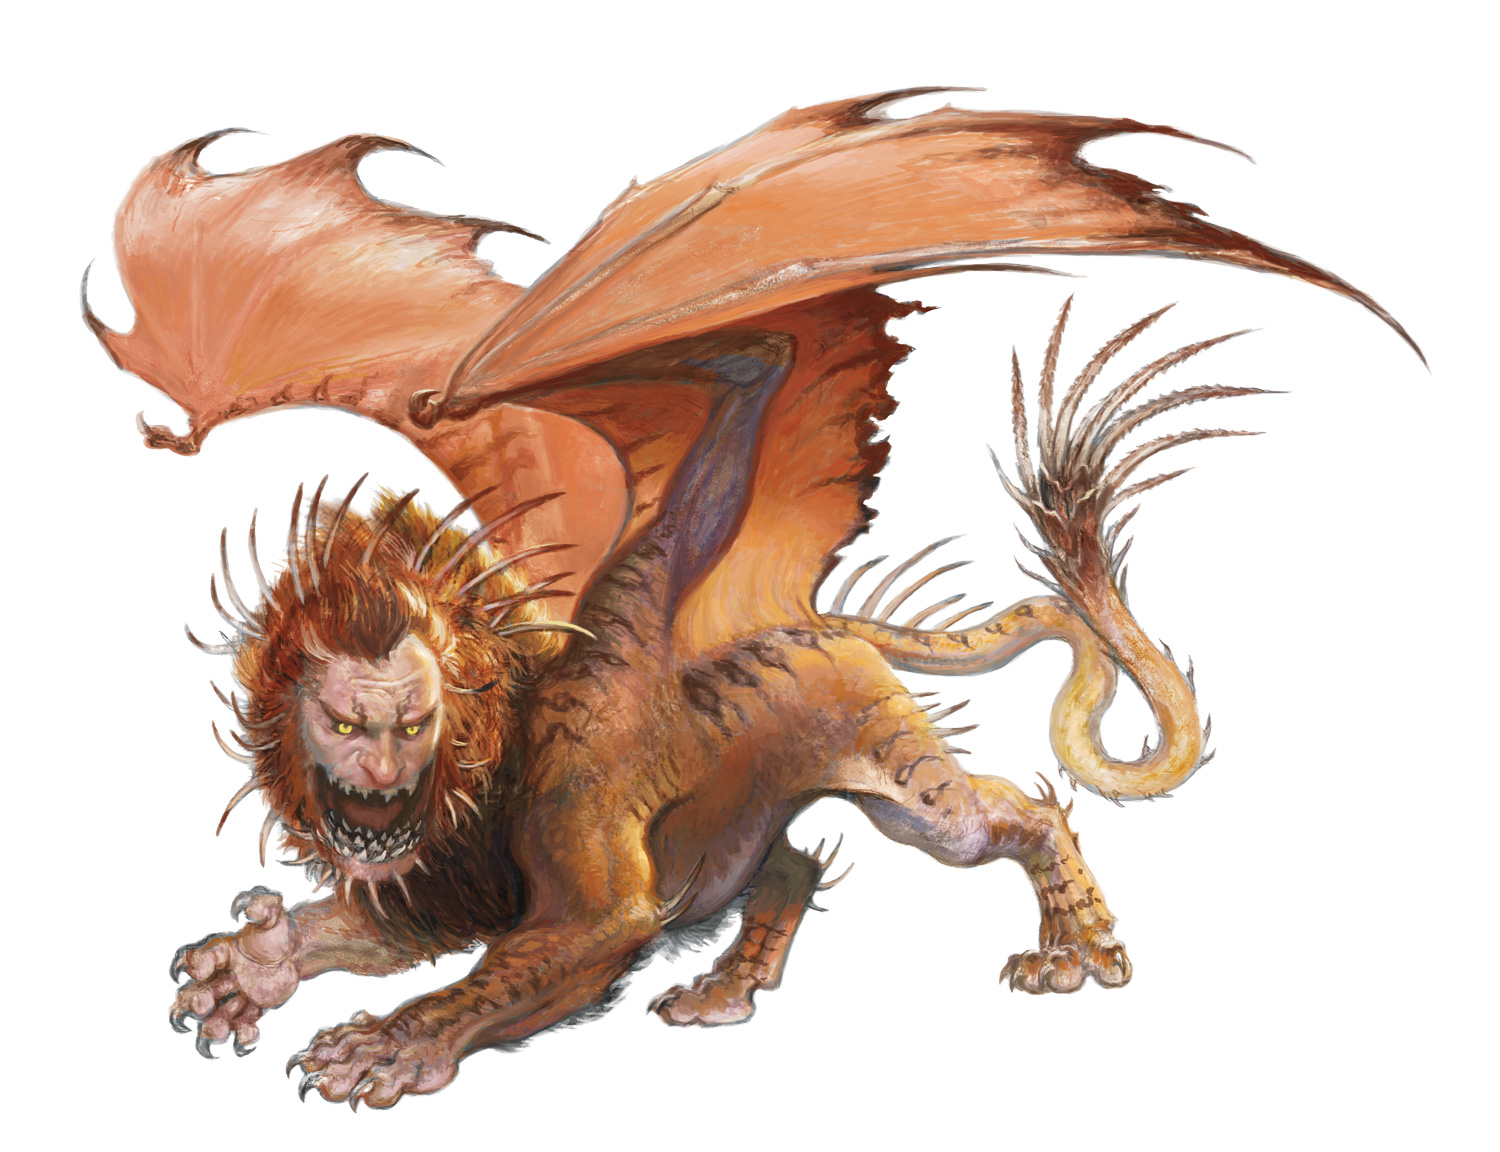 Monster_Manual_5e_-_Manticore_-_p213.jpg